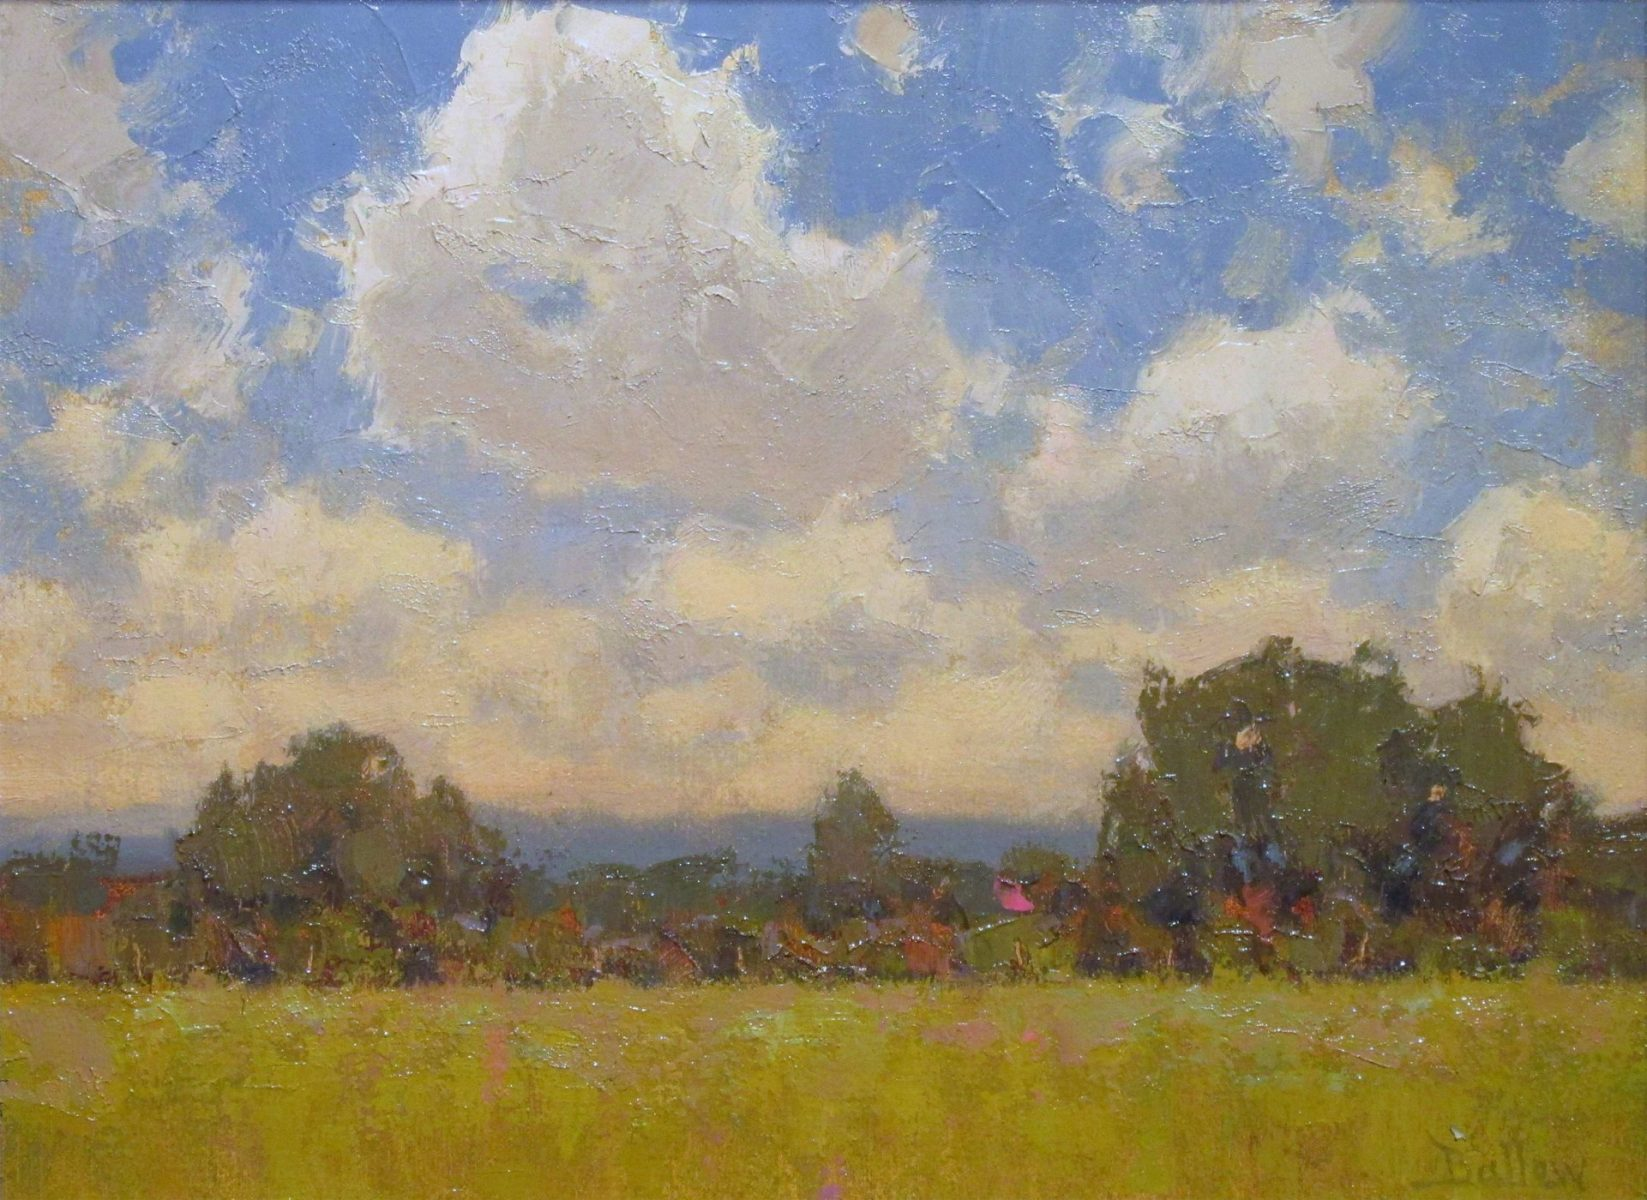 Summer Meadow by David Ballew